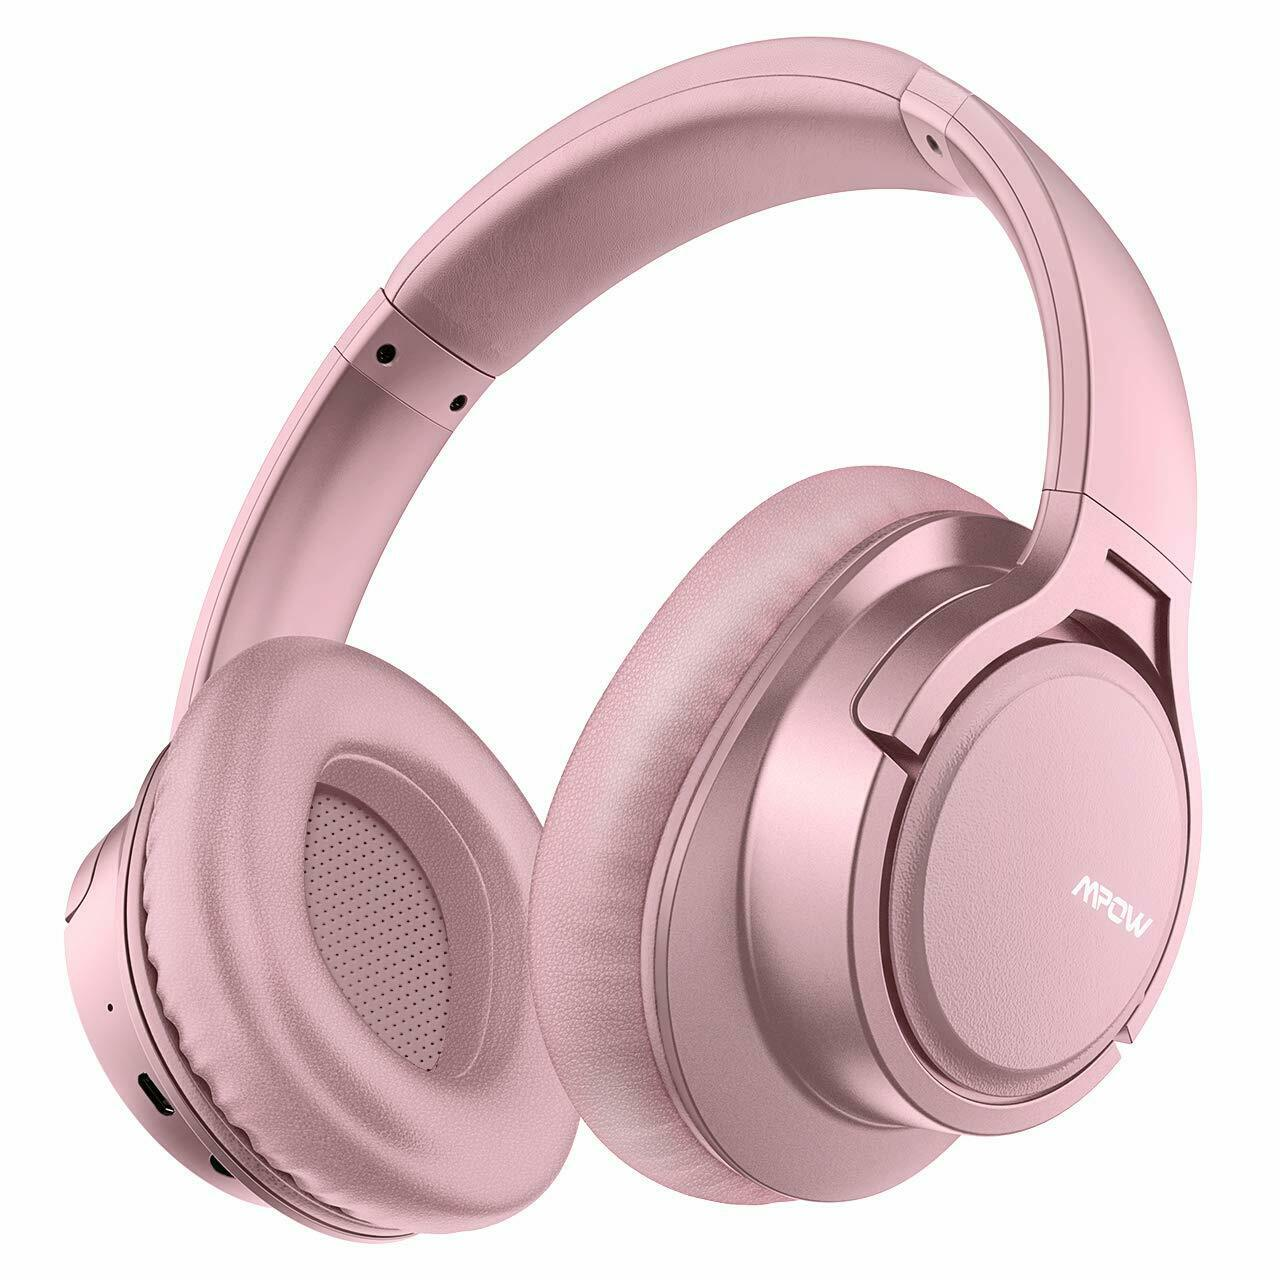 MPOW H7 Noise Cancelling Bluetooth Headphones ANC Over-Ear W